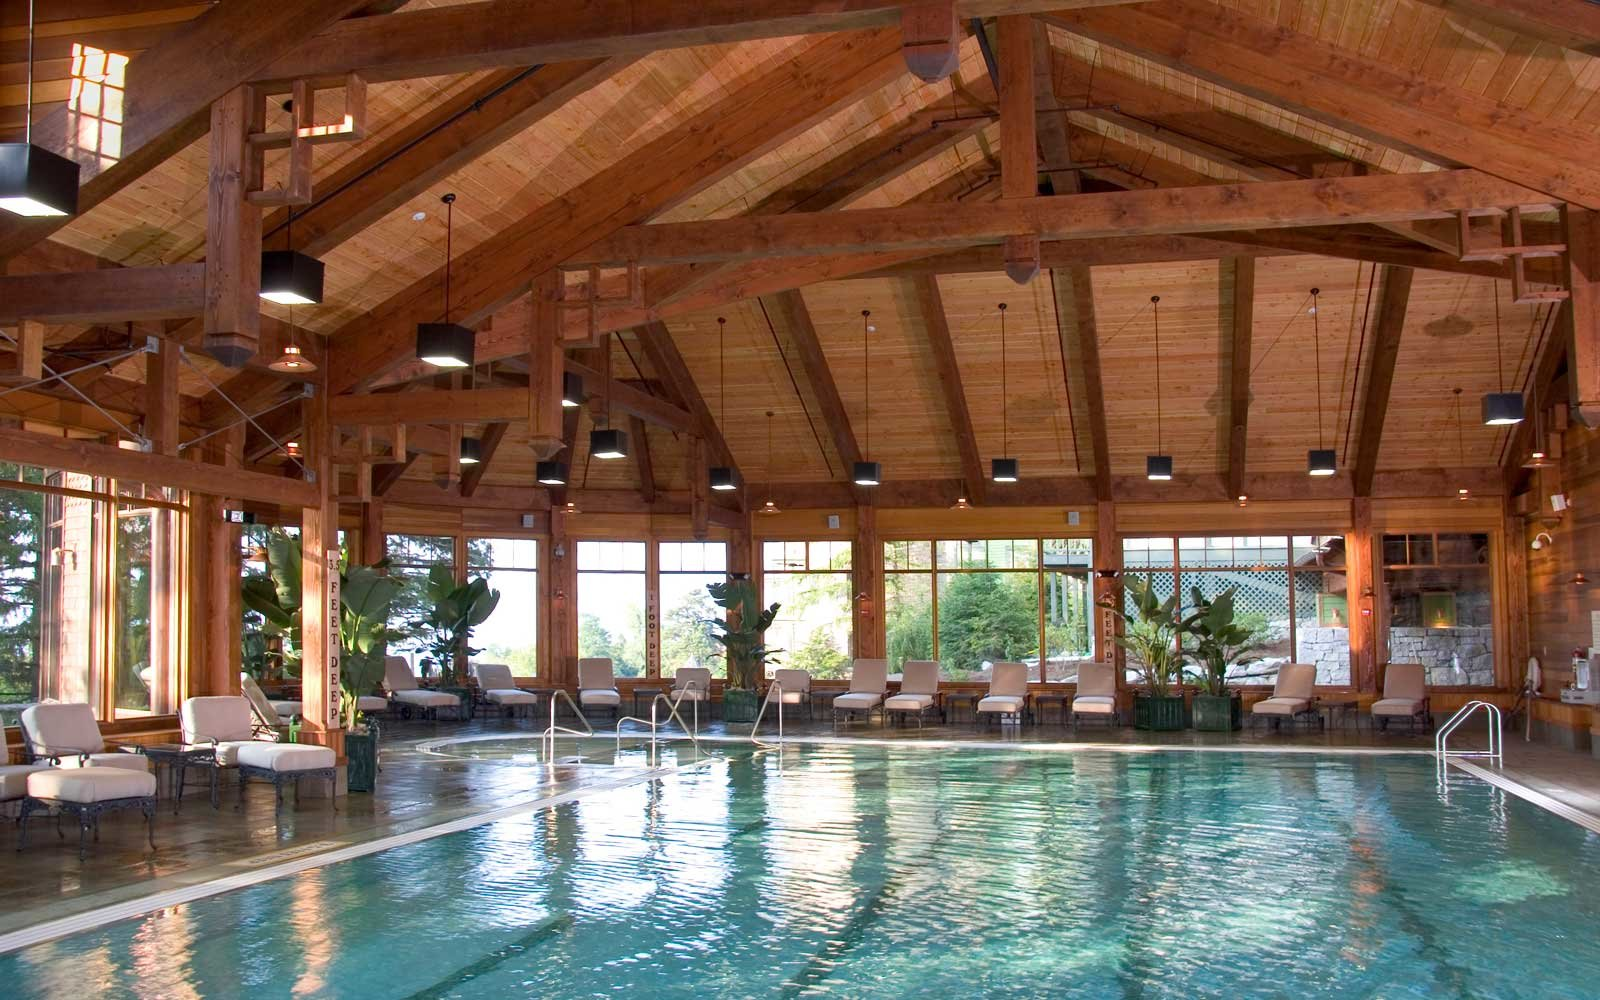 The world 39 s best hotels and resorts for families travel for Spa vacations near nyc